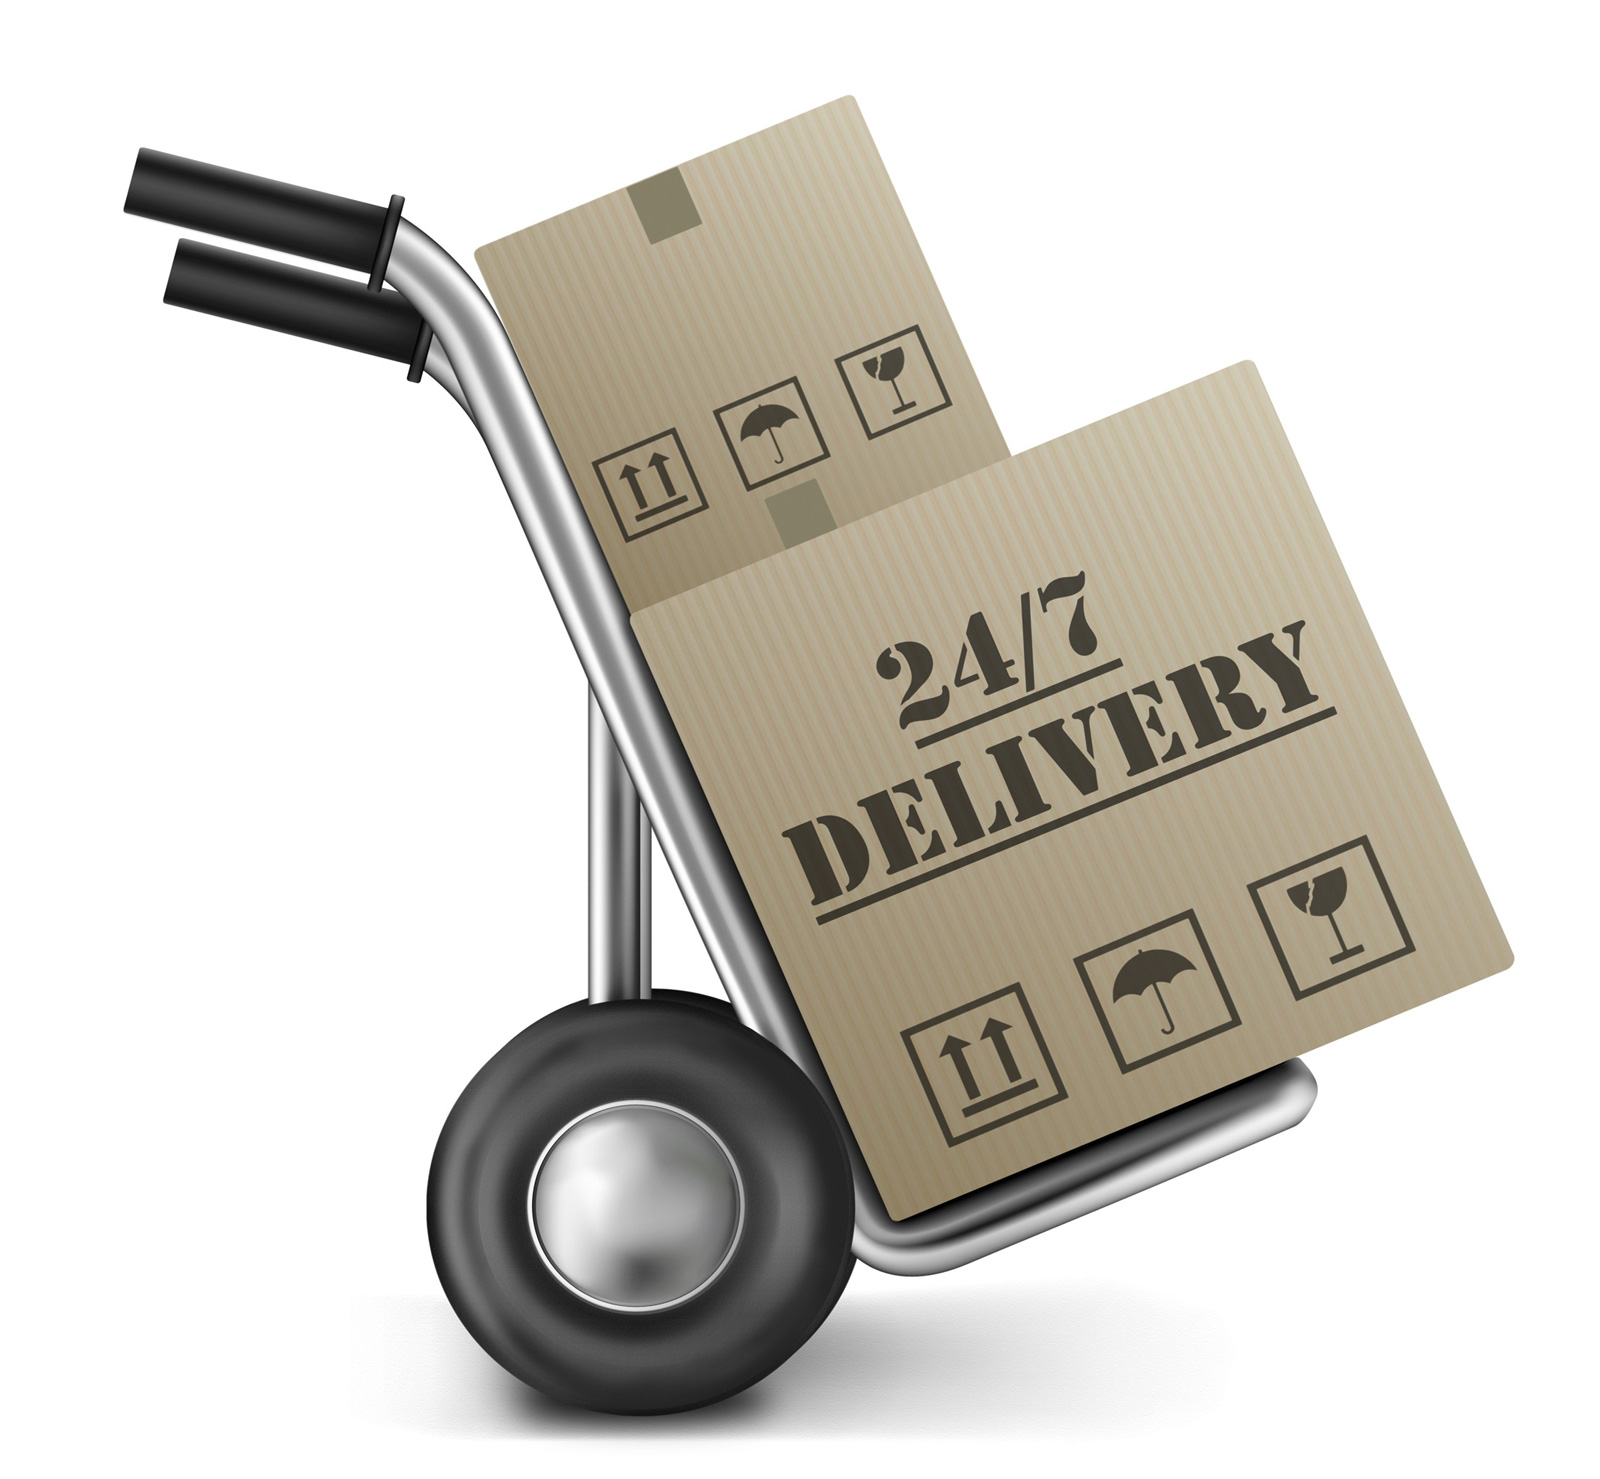 13743182281135587172boxshop_24-7-delivery.jpg